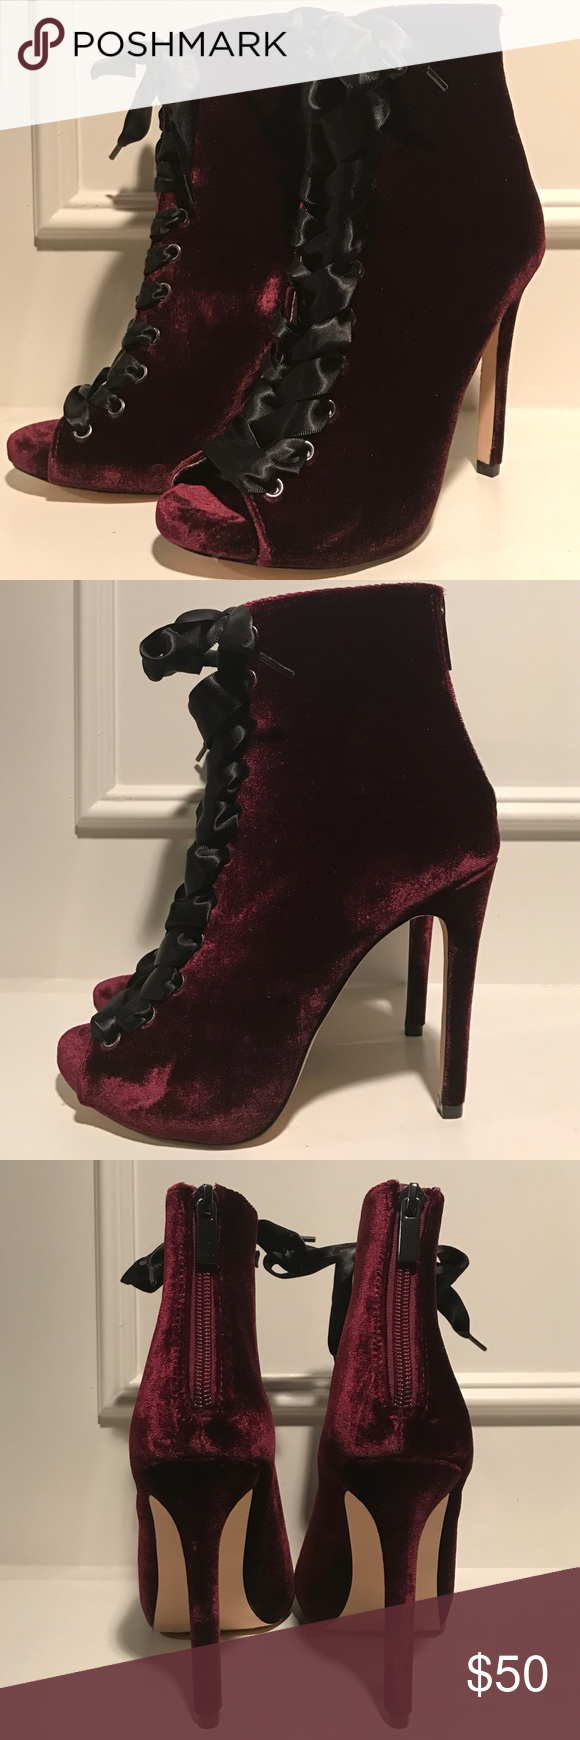 58355976a714 Steve Madden Velvet Lace Up Booties NEW Size 5.5 Pretty velvet booties